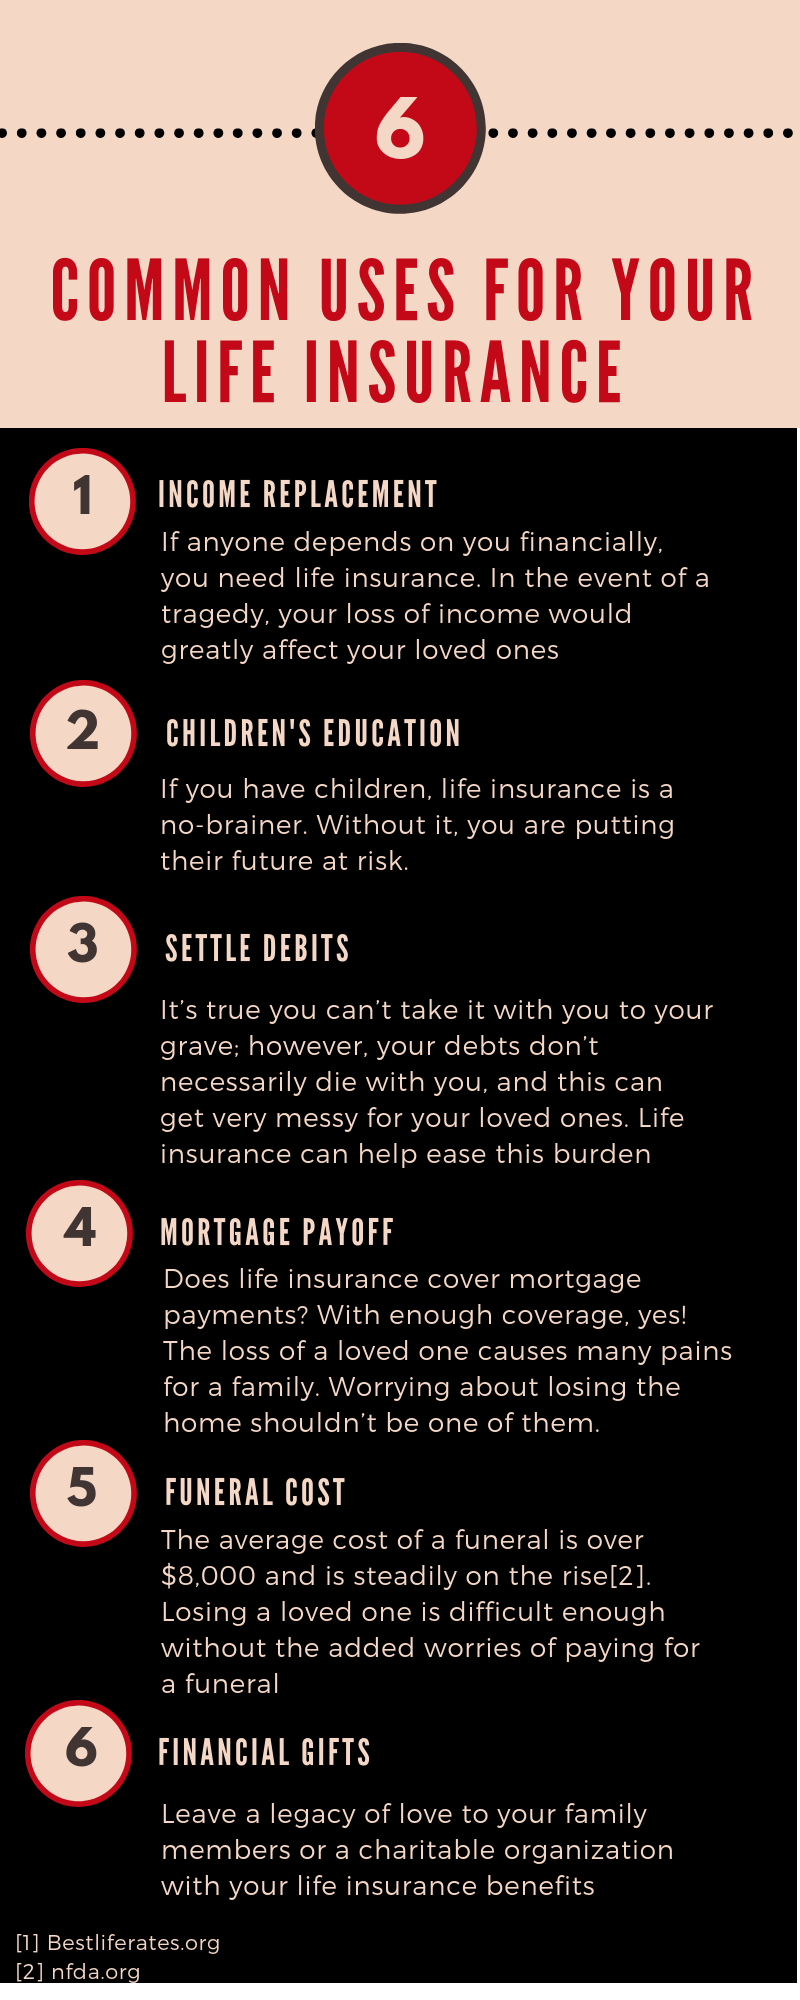 Life Insurance, Income Replacement, Children's Education, Settle Debits, Mortgage Payoff, Funeral Cost, Financial Gift, Term Insurance, Whole Life Insurance